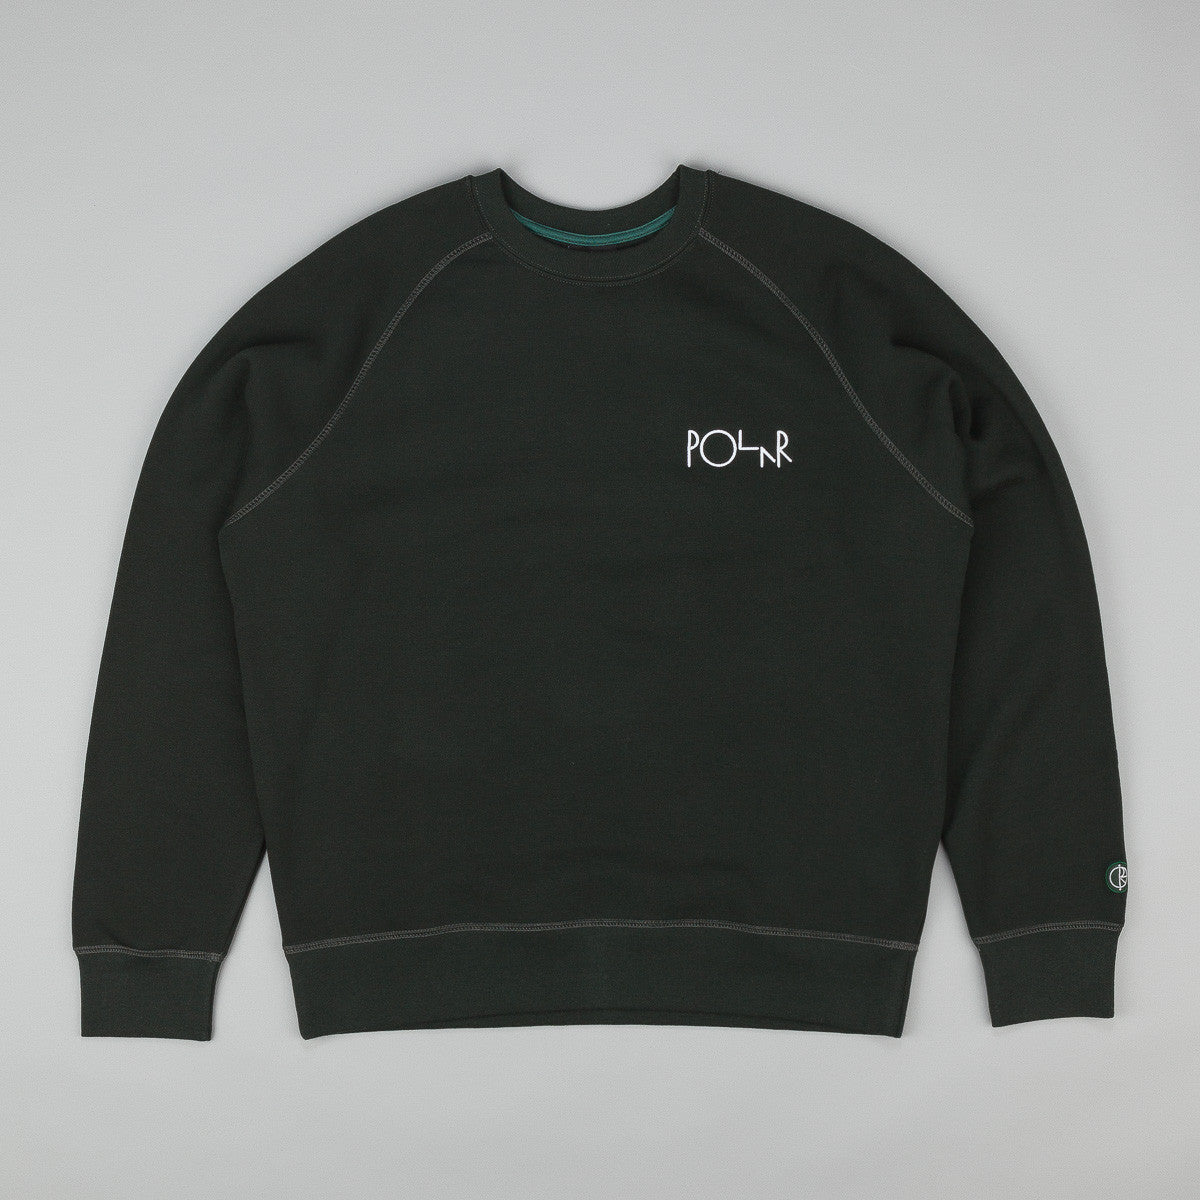 Polar Default Sweatshirt